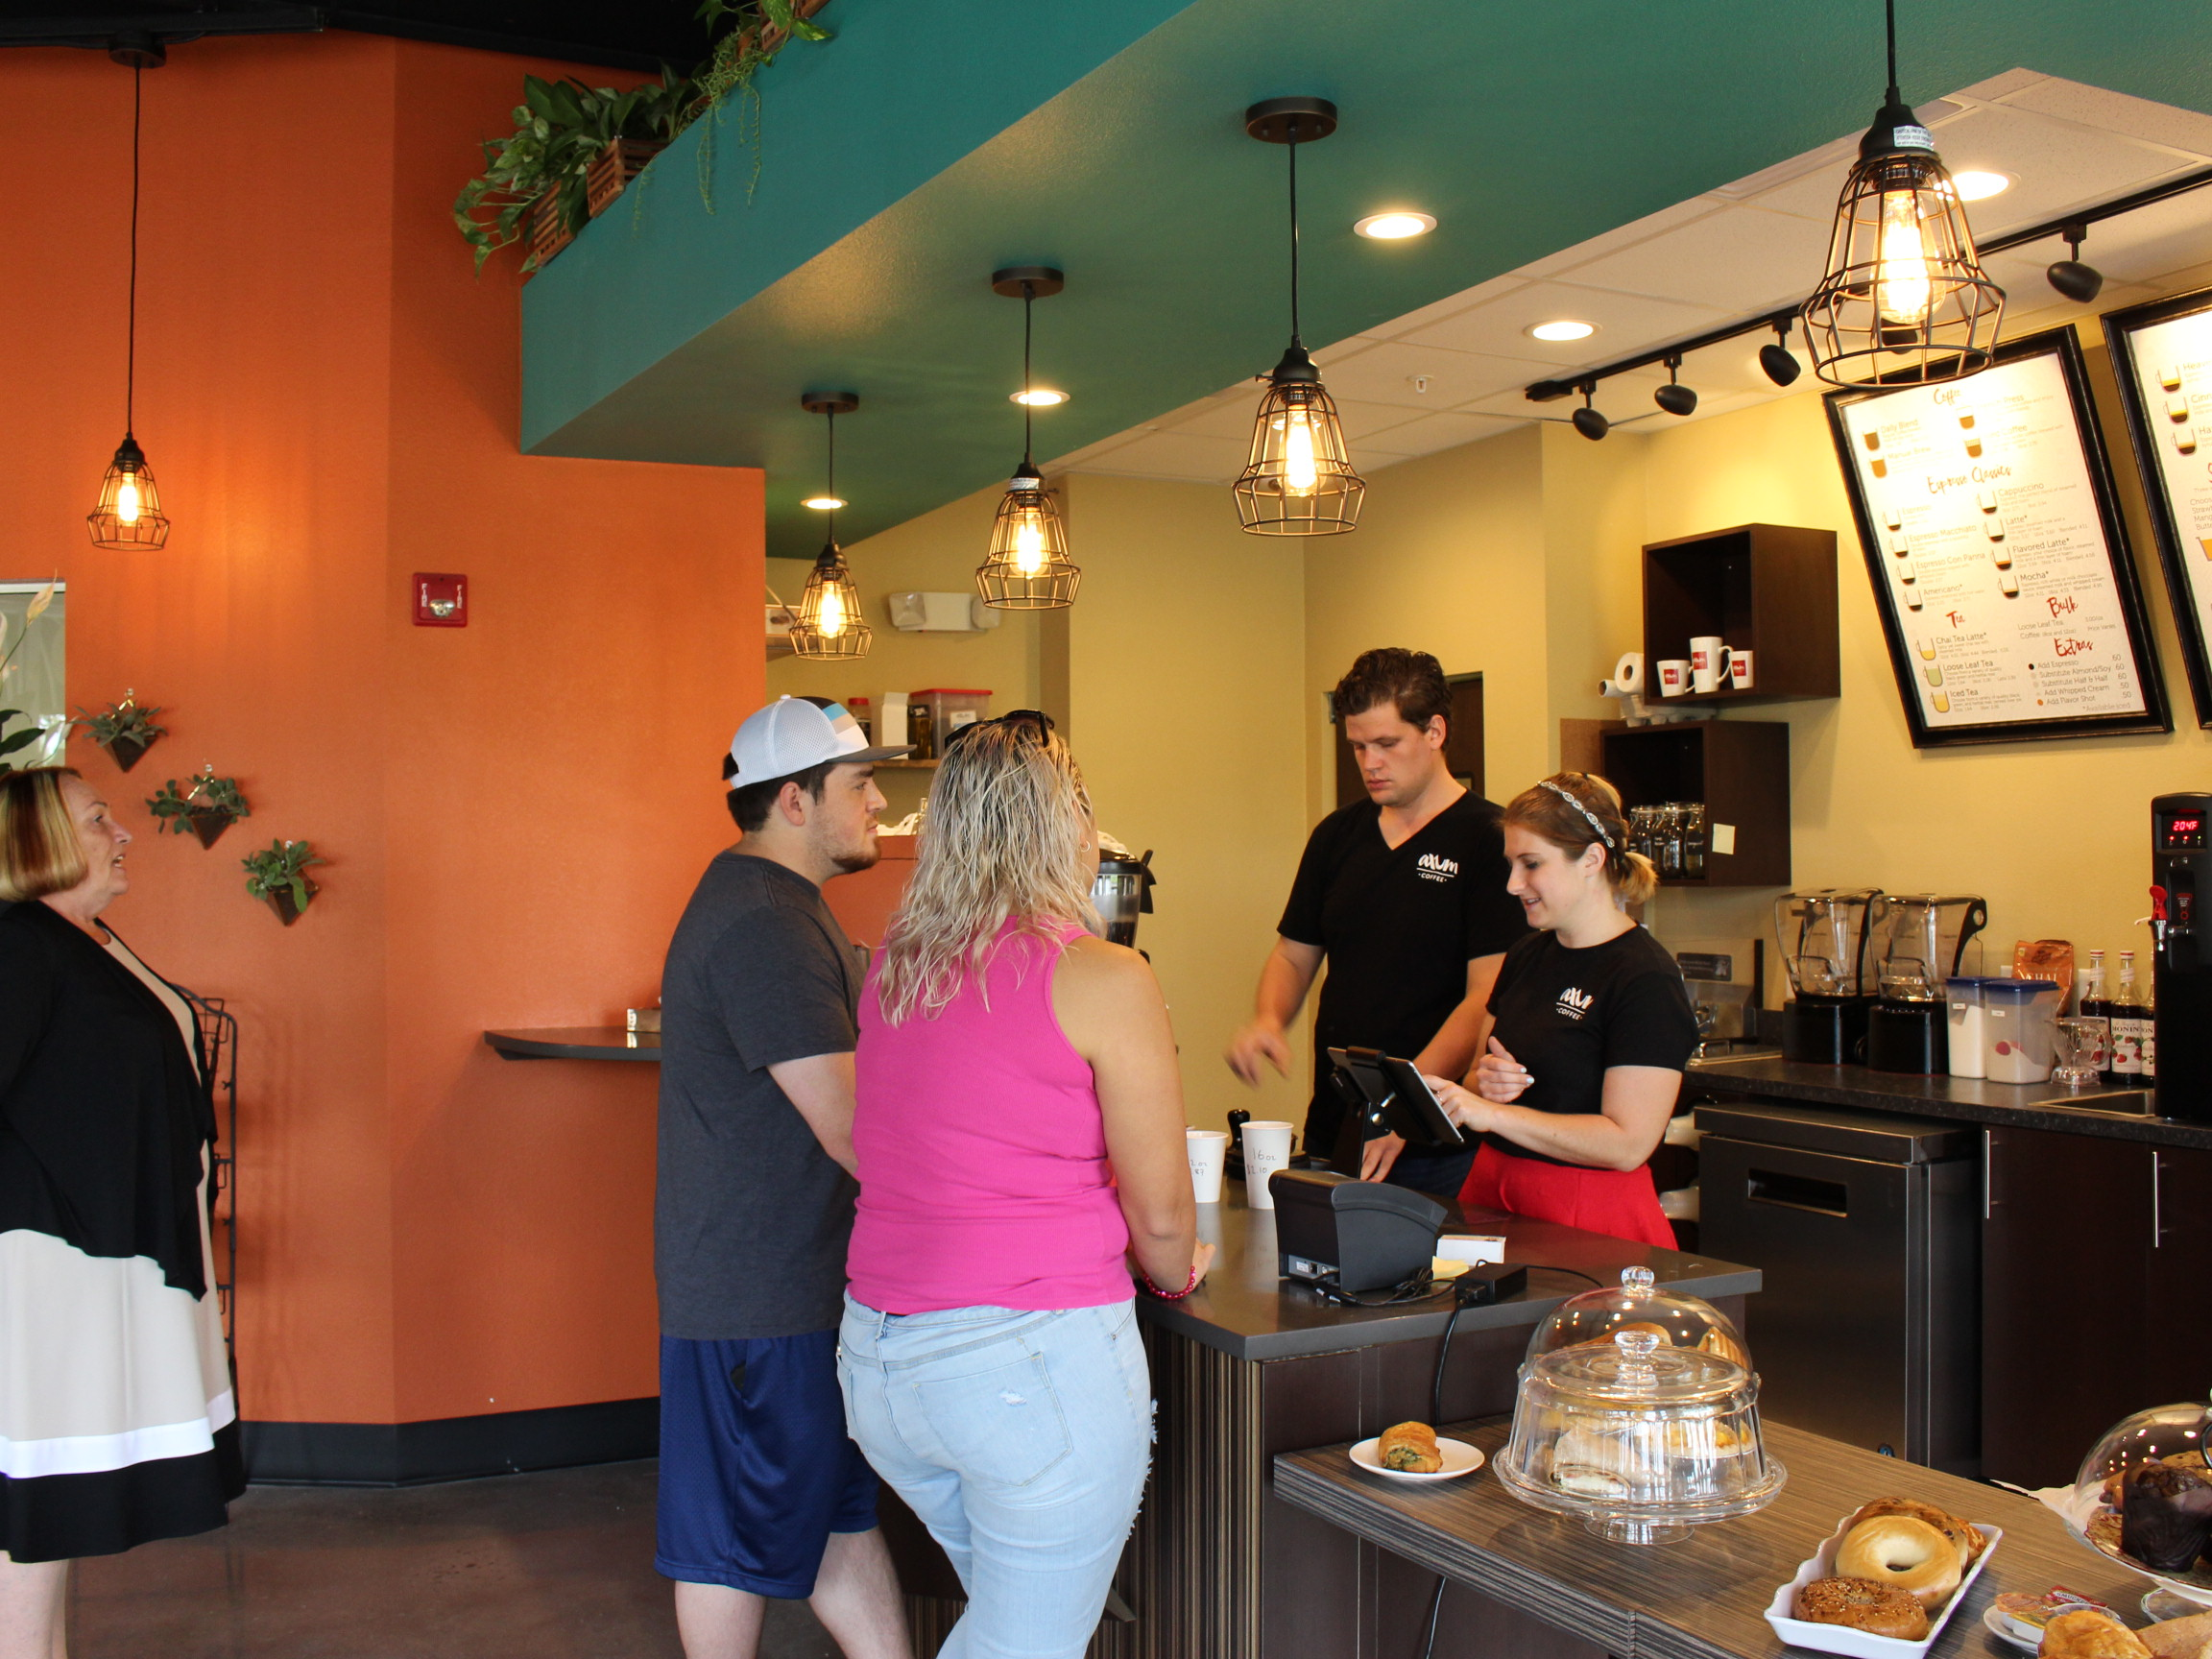 Tania Ramirez is one of the first to order Axum Coffee on opening day of the Orlando Cat Cafe. Axum Coffee and The Animal League are a part of the collaborative project to help cats find new owners.